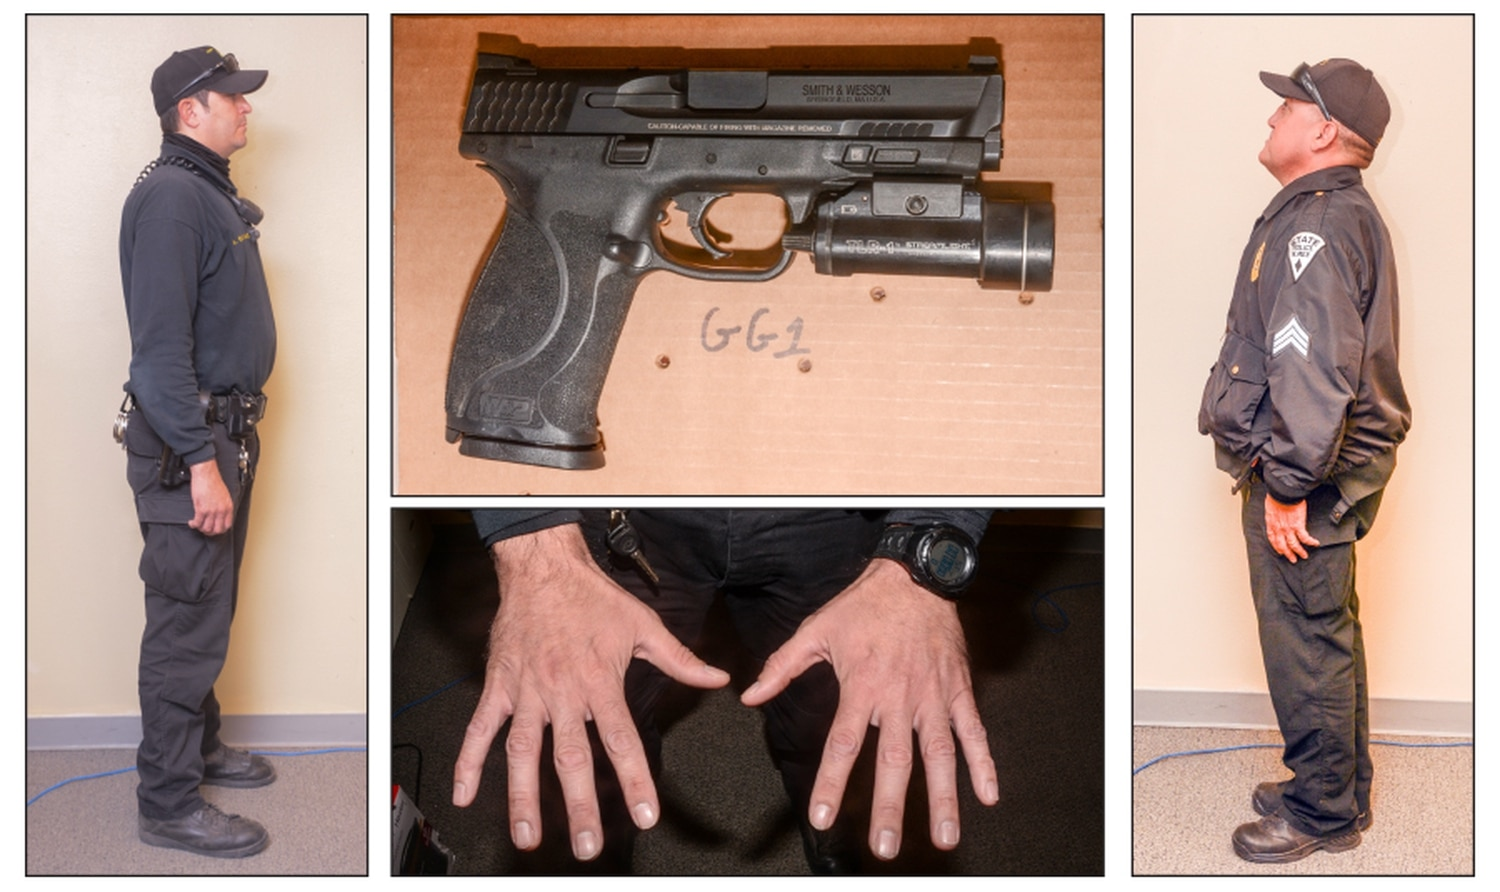 Photos collected by State Police after the shooting show Officer Gene Gonzales, at left, and Sgt. Robert Carrejo, at right. In the center is the handgun Gonzales used to fatally shoot Rodney Applewhite last November and a photo of Gonzales' hands.